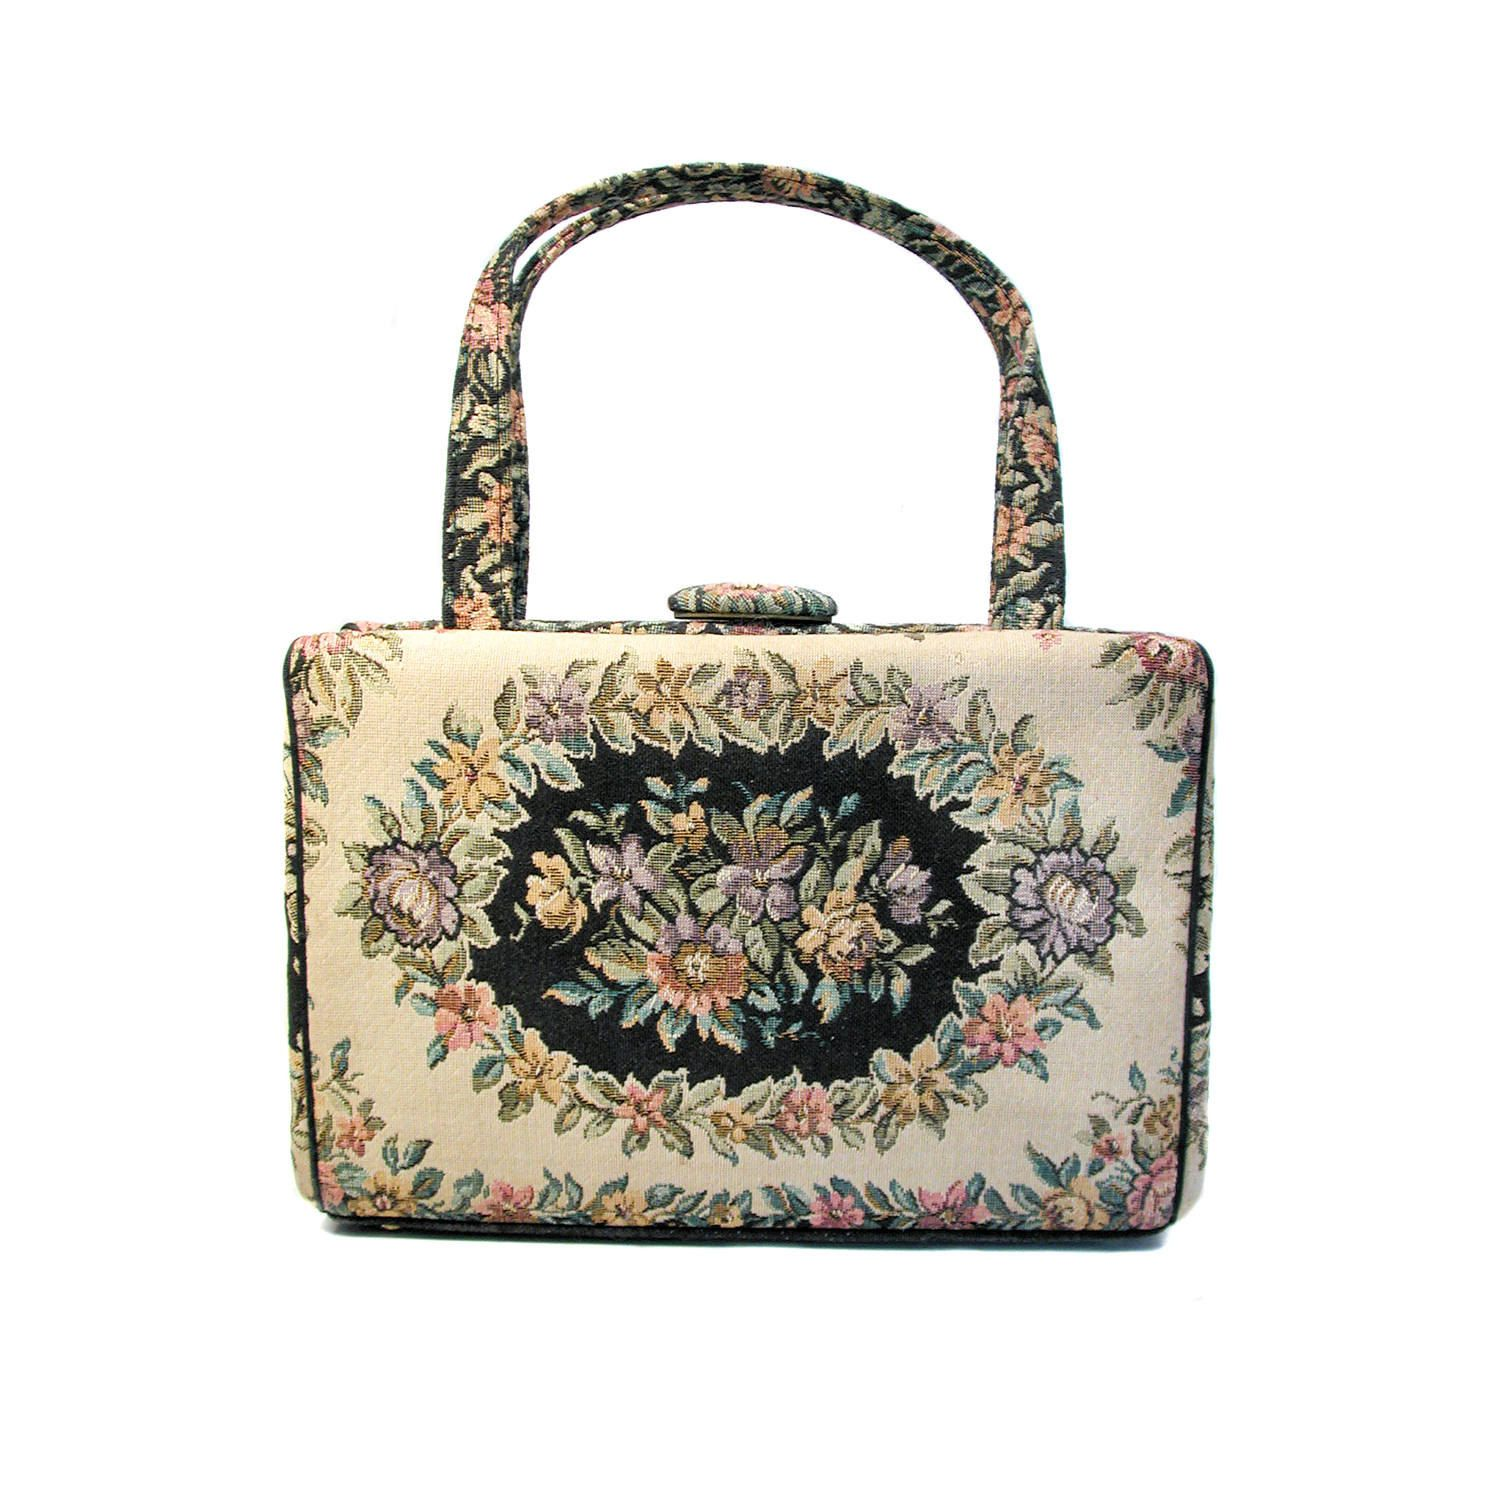 Vintage Tapestry Bag Waldman Tan Black Floral 60s Purse By Morningglorious On Etsy Tapestry Bag Vintage Tapestry 60s Purse